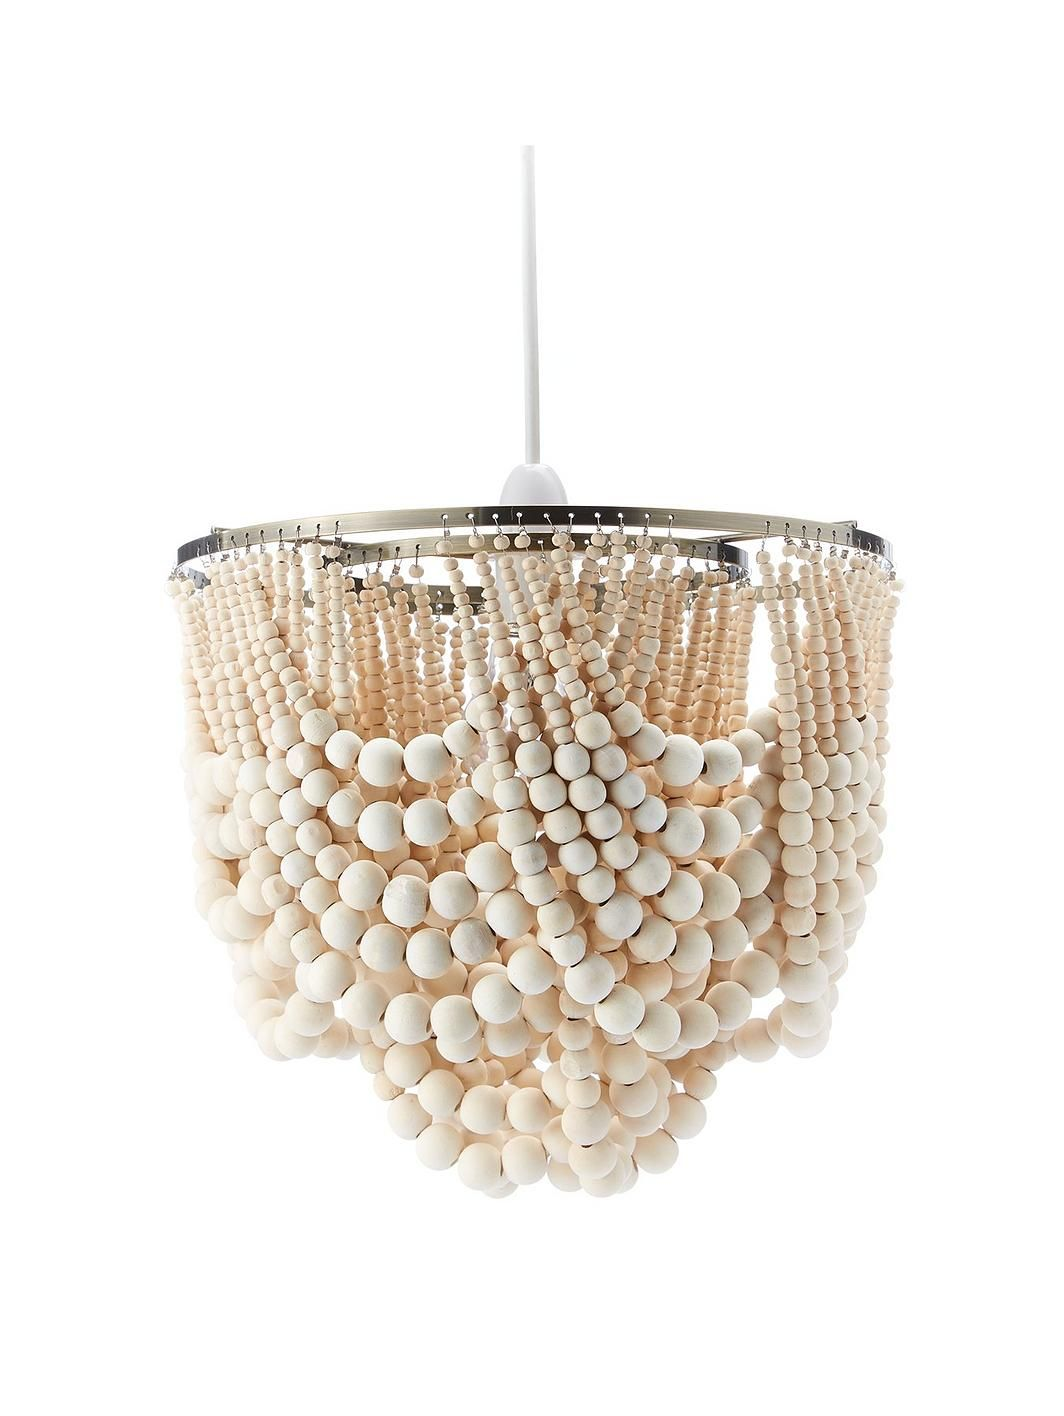 Miller Wooden Bead Easy Fit Ceiling Light Shade (With